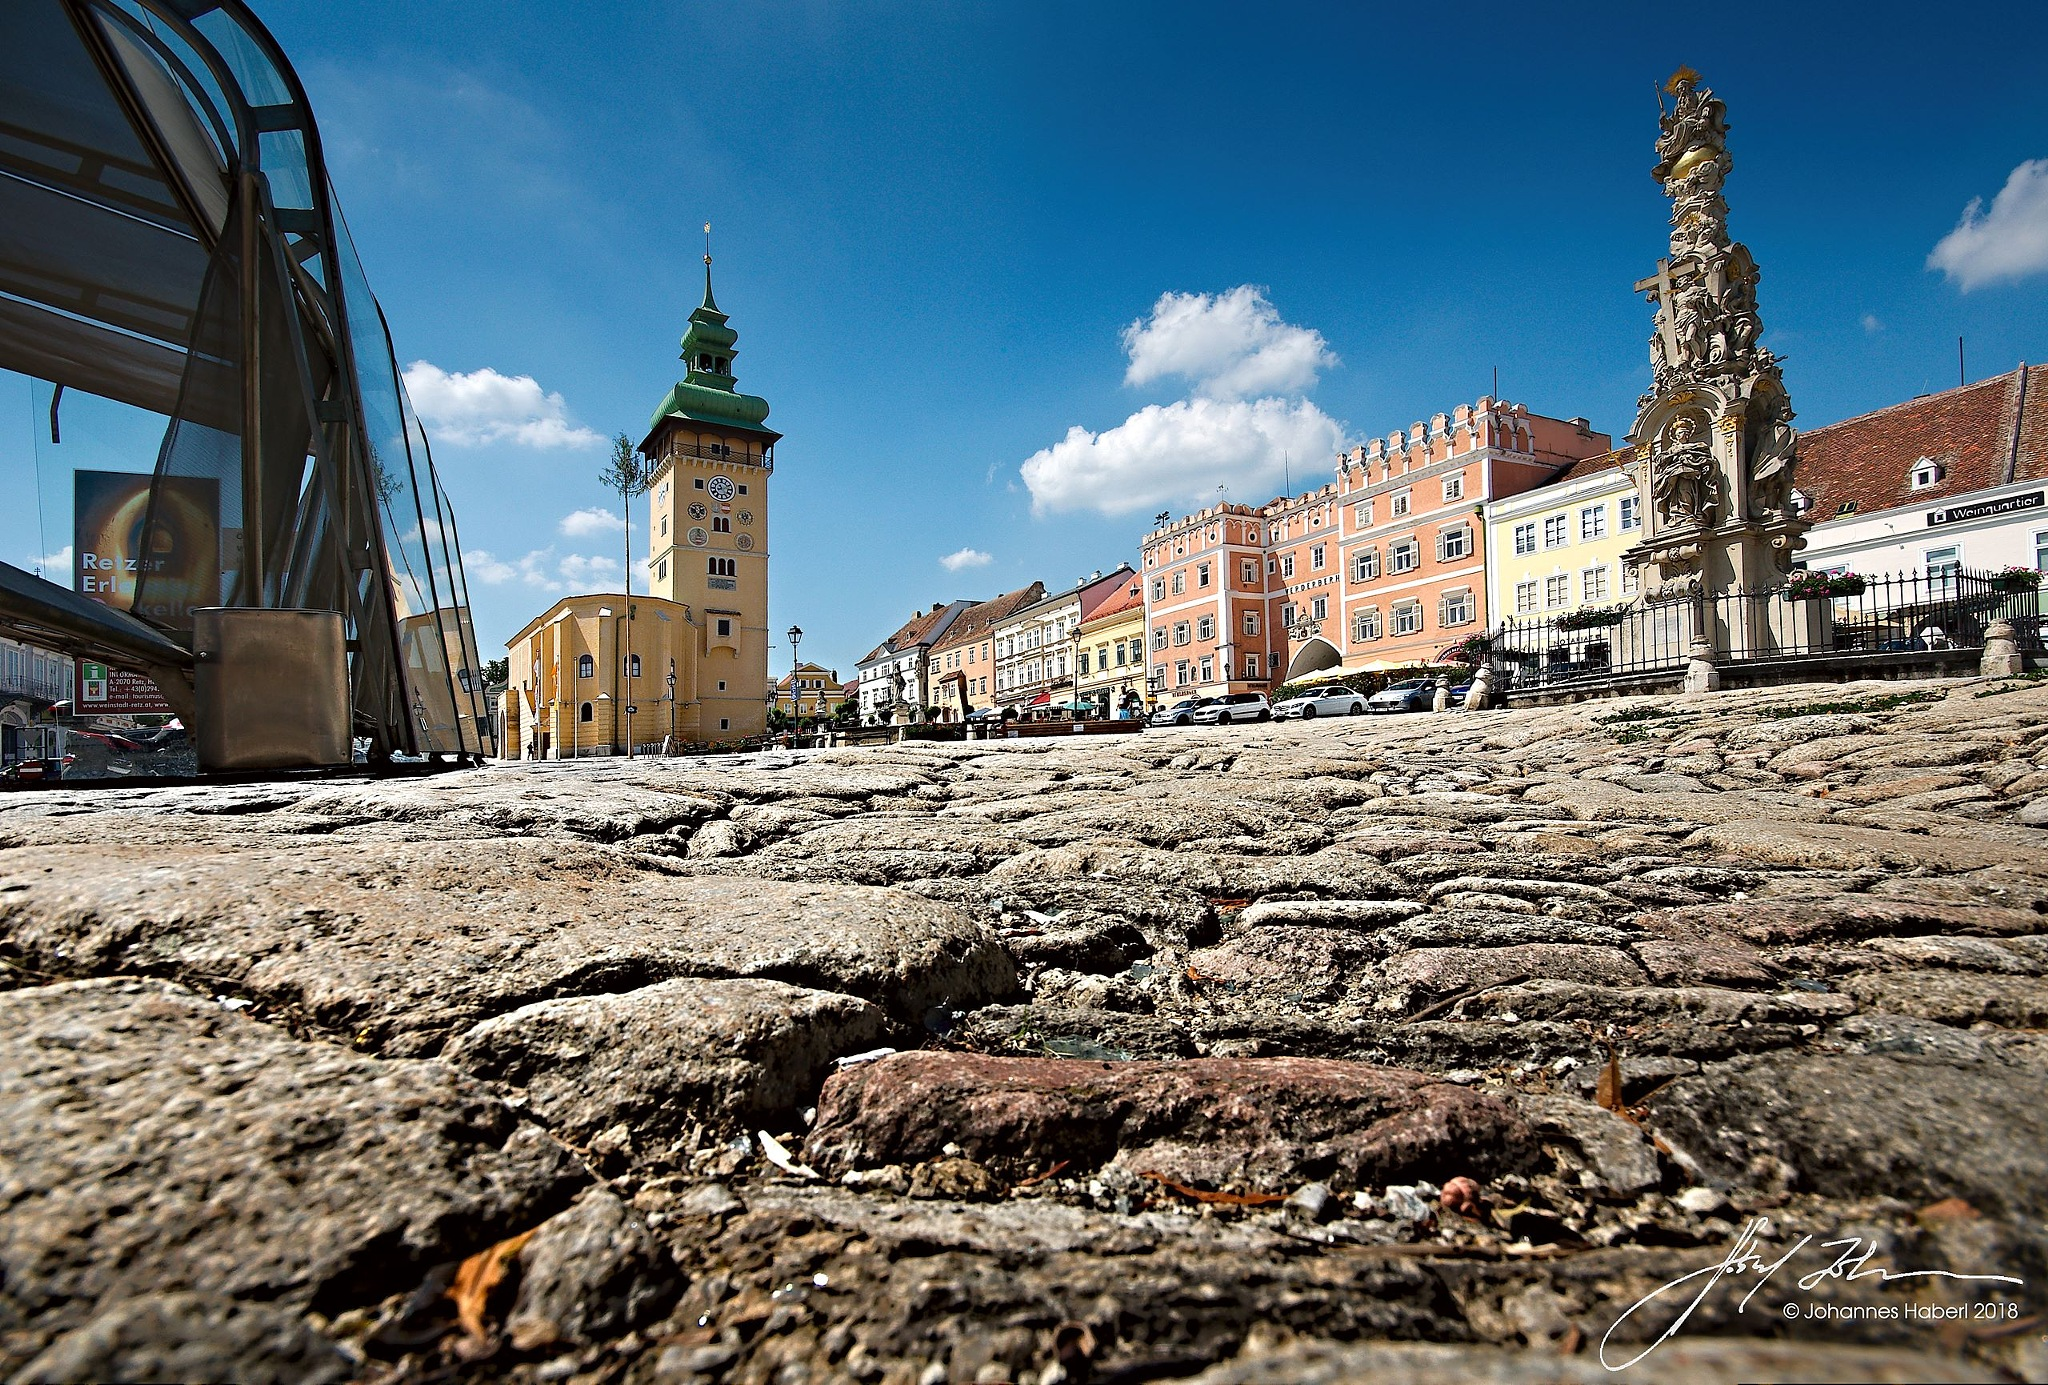 main square Retz with Town Tower & Trinity Column II by Johannes Haberl